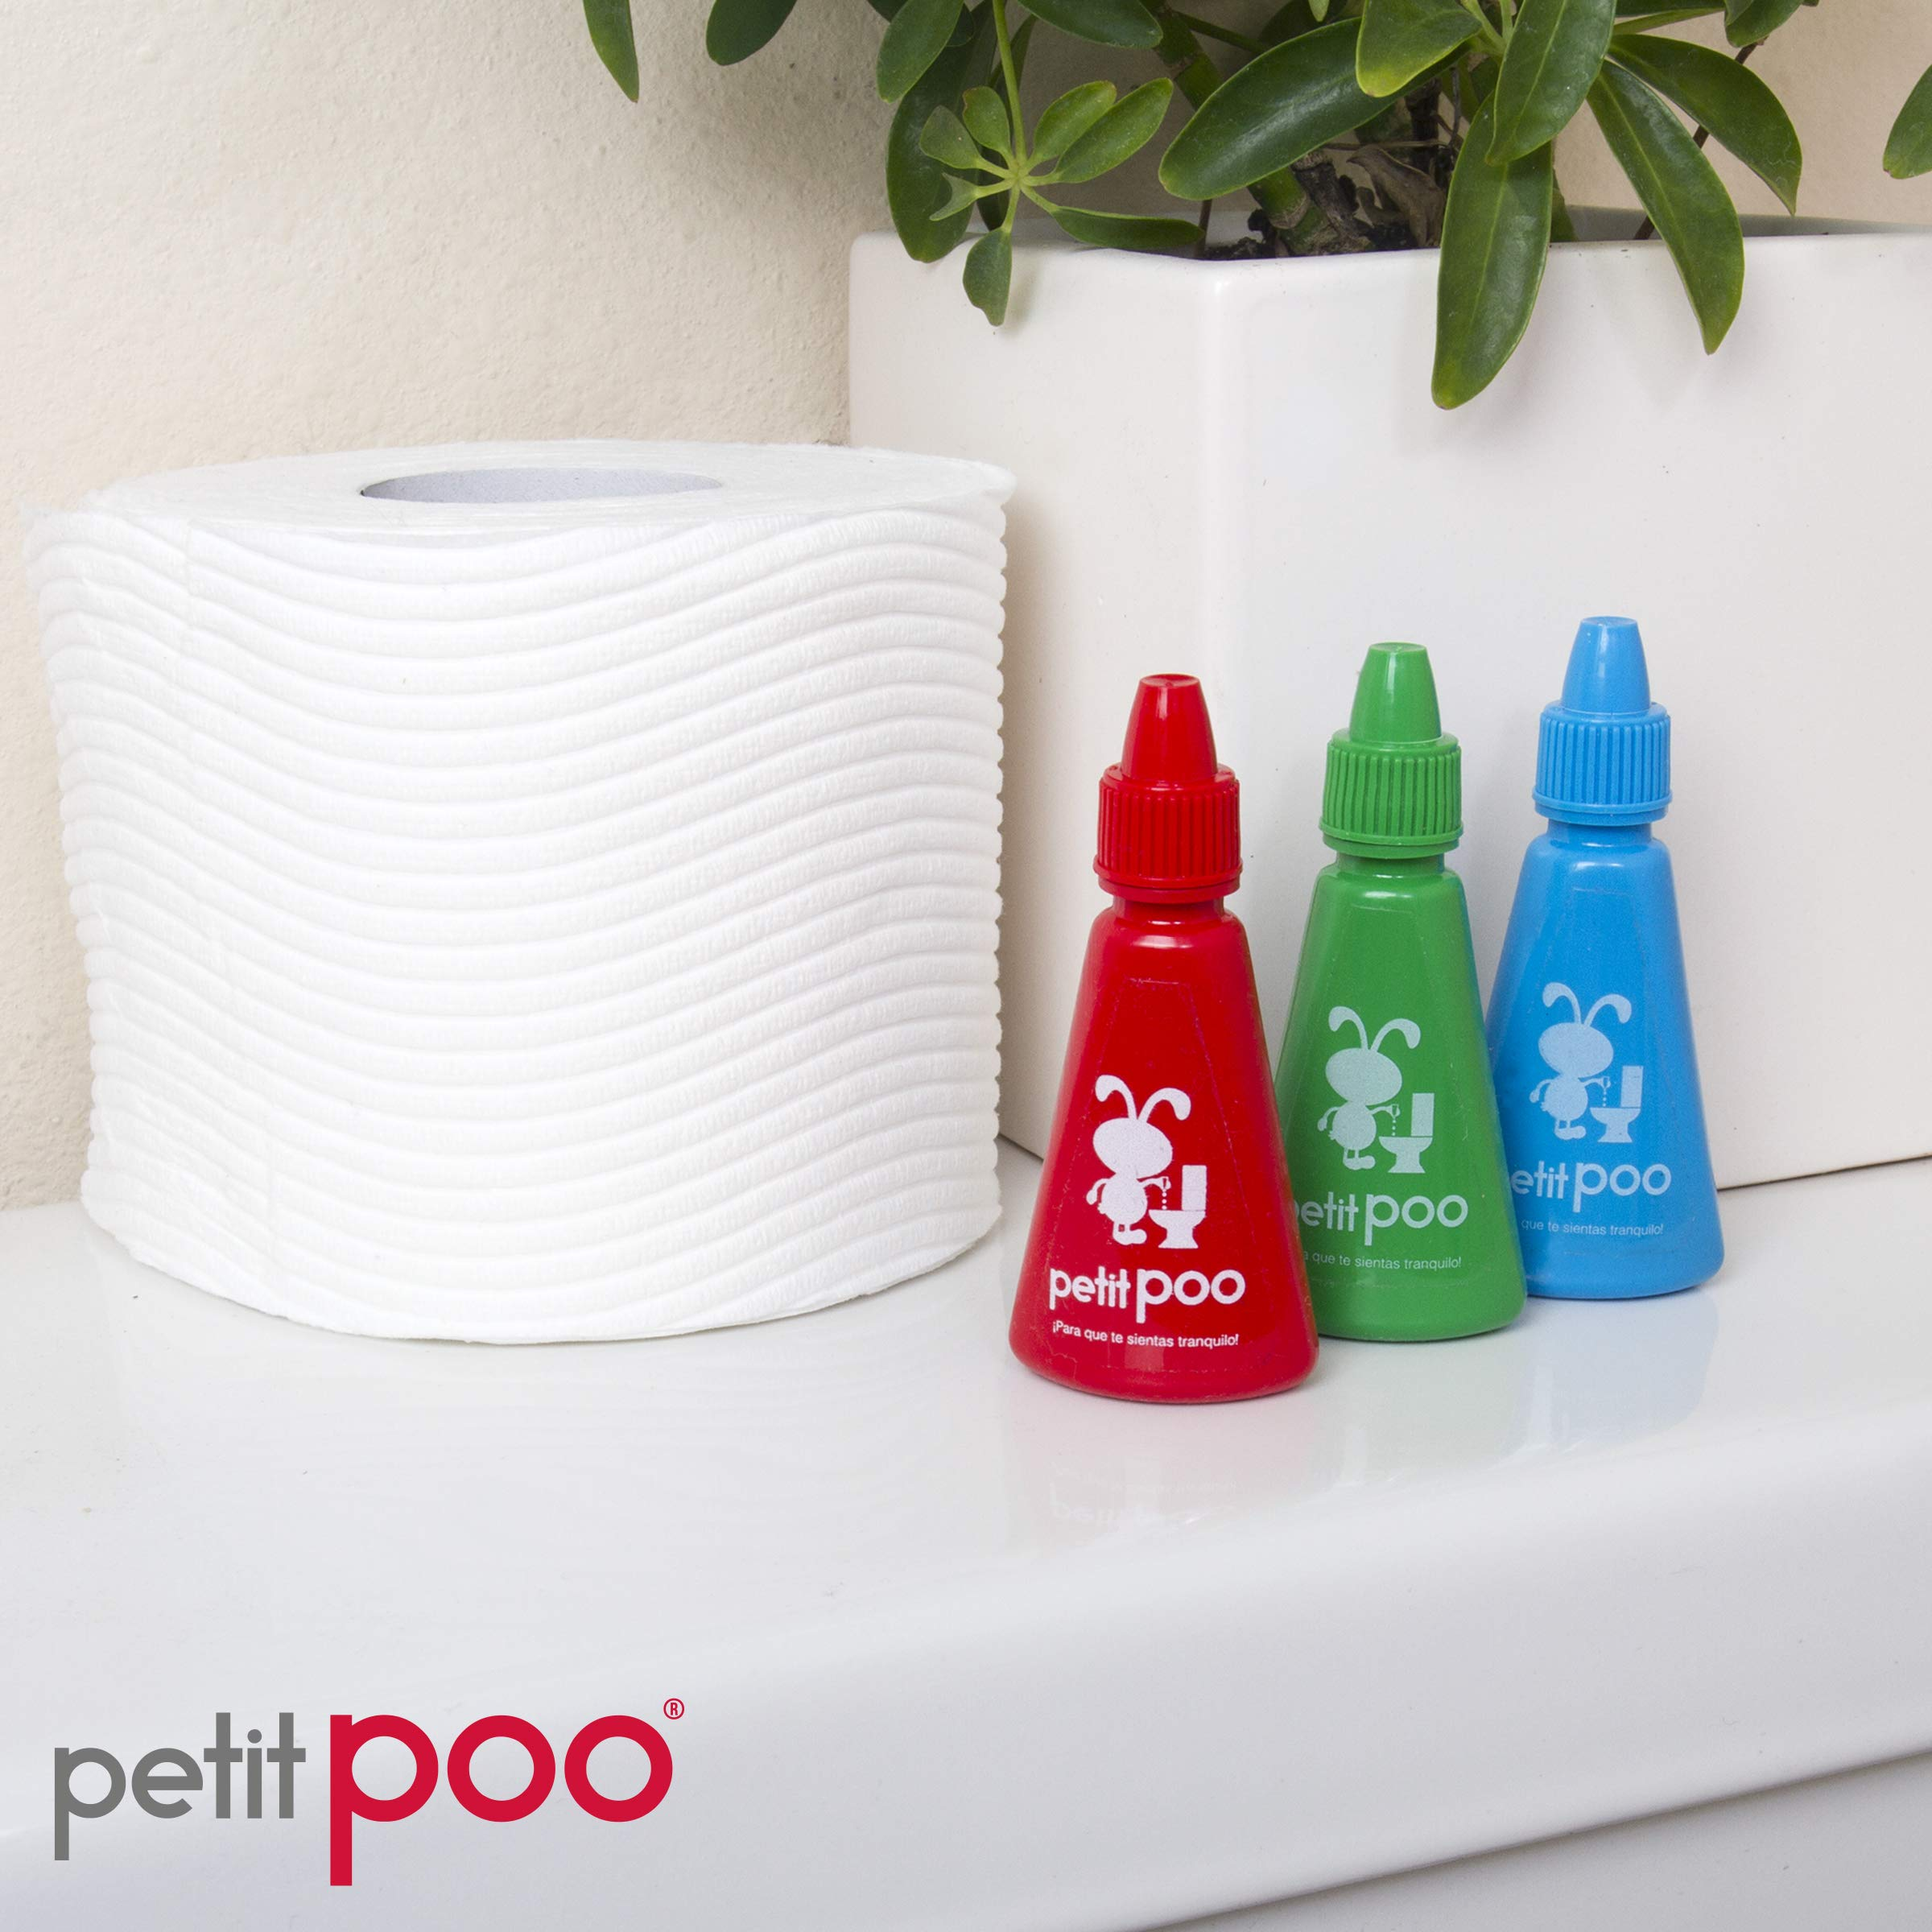 Petit Poo - All Natural Toilet Odor Eliminator Deodorizer Odor Blocker Liquid Air Freshener - Travel Dropper Bottle Value 3 Pack (Assorted)